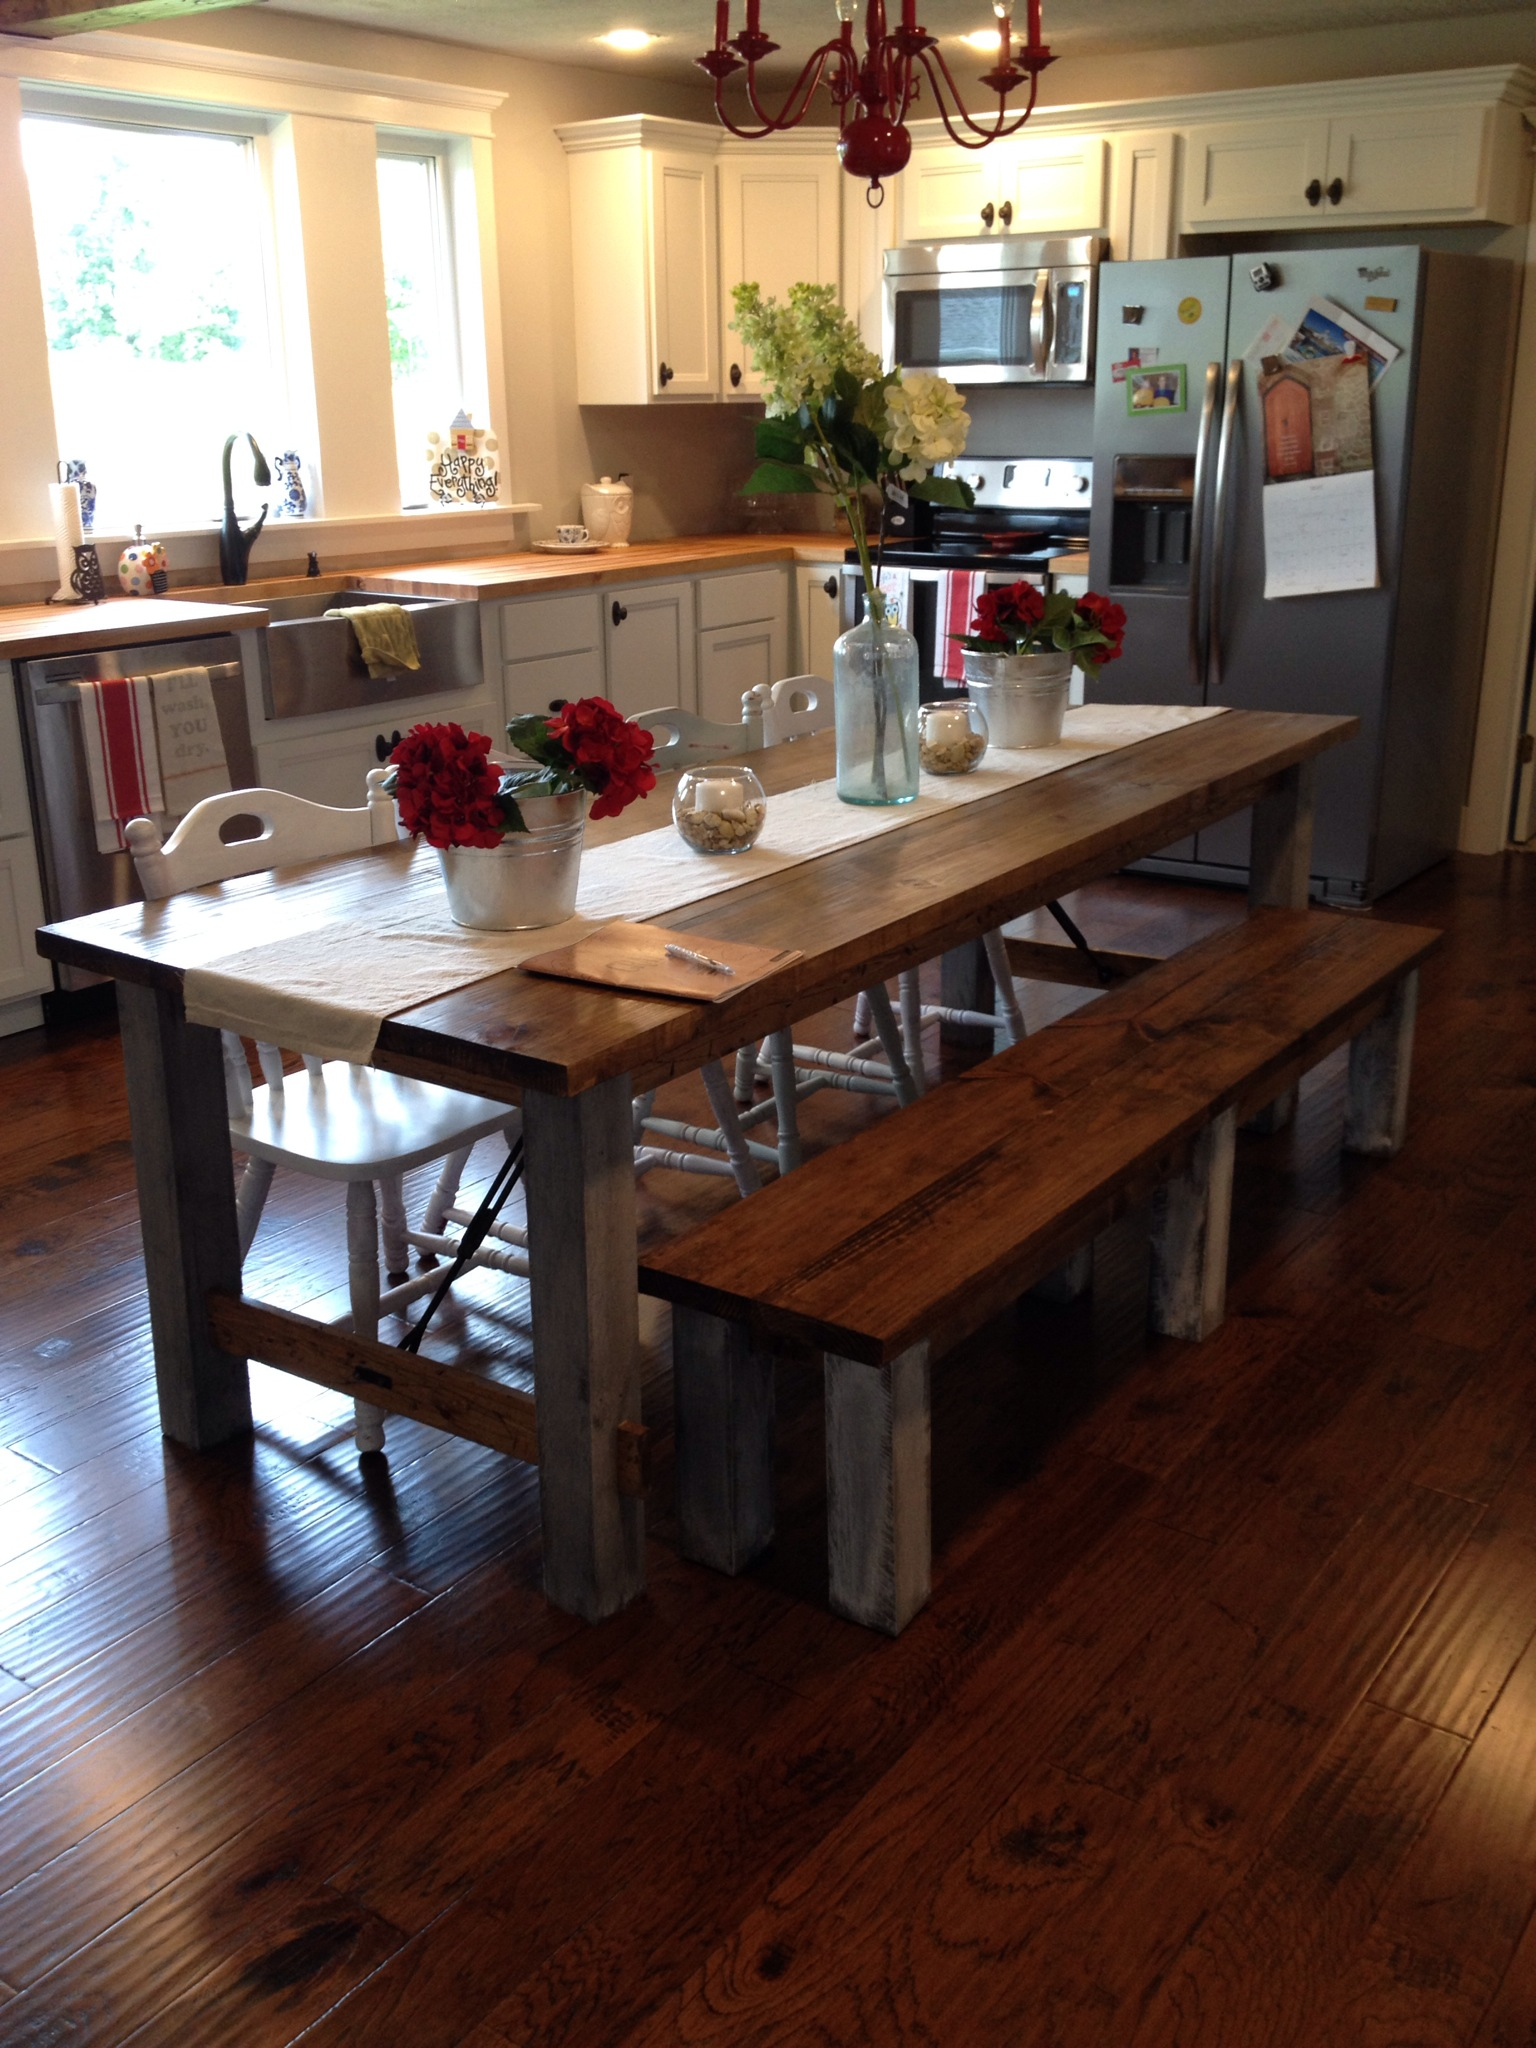 Shara At Chasing A Dream Shares Her Farmhouse Kitchen